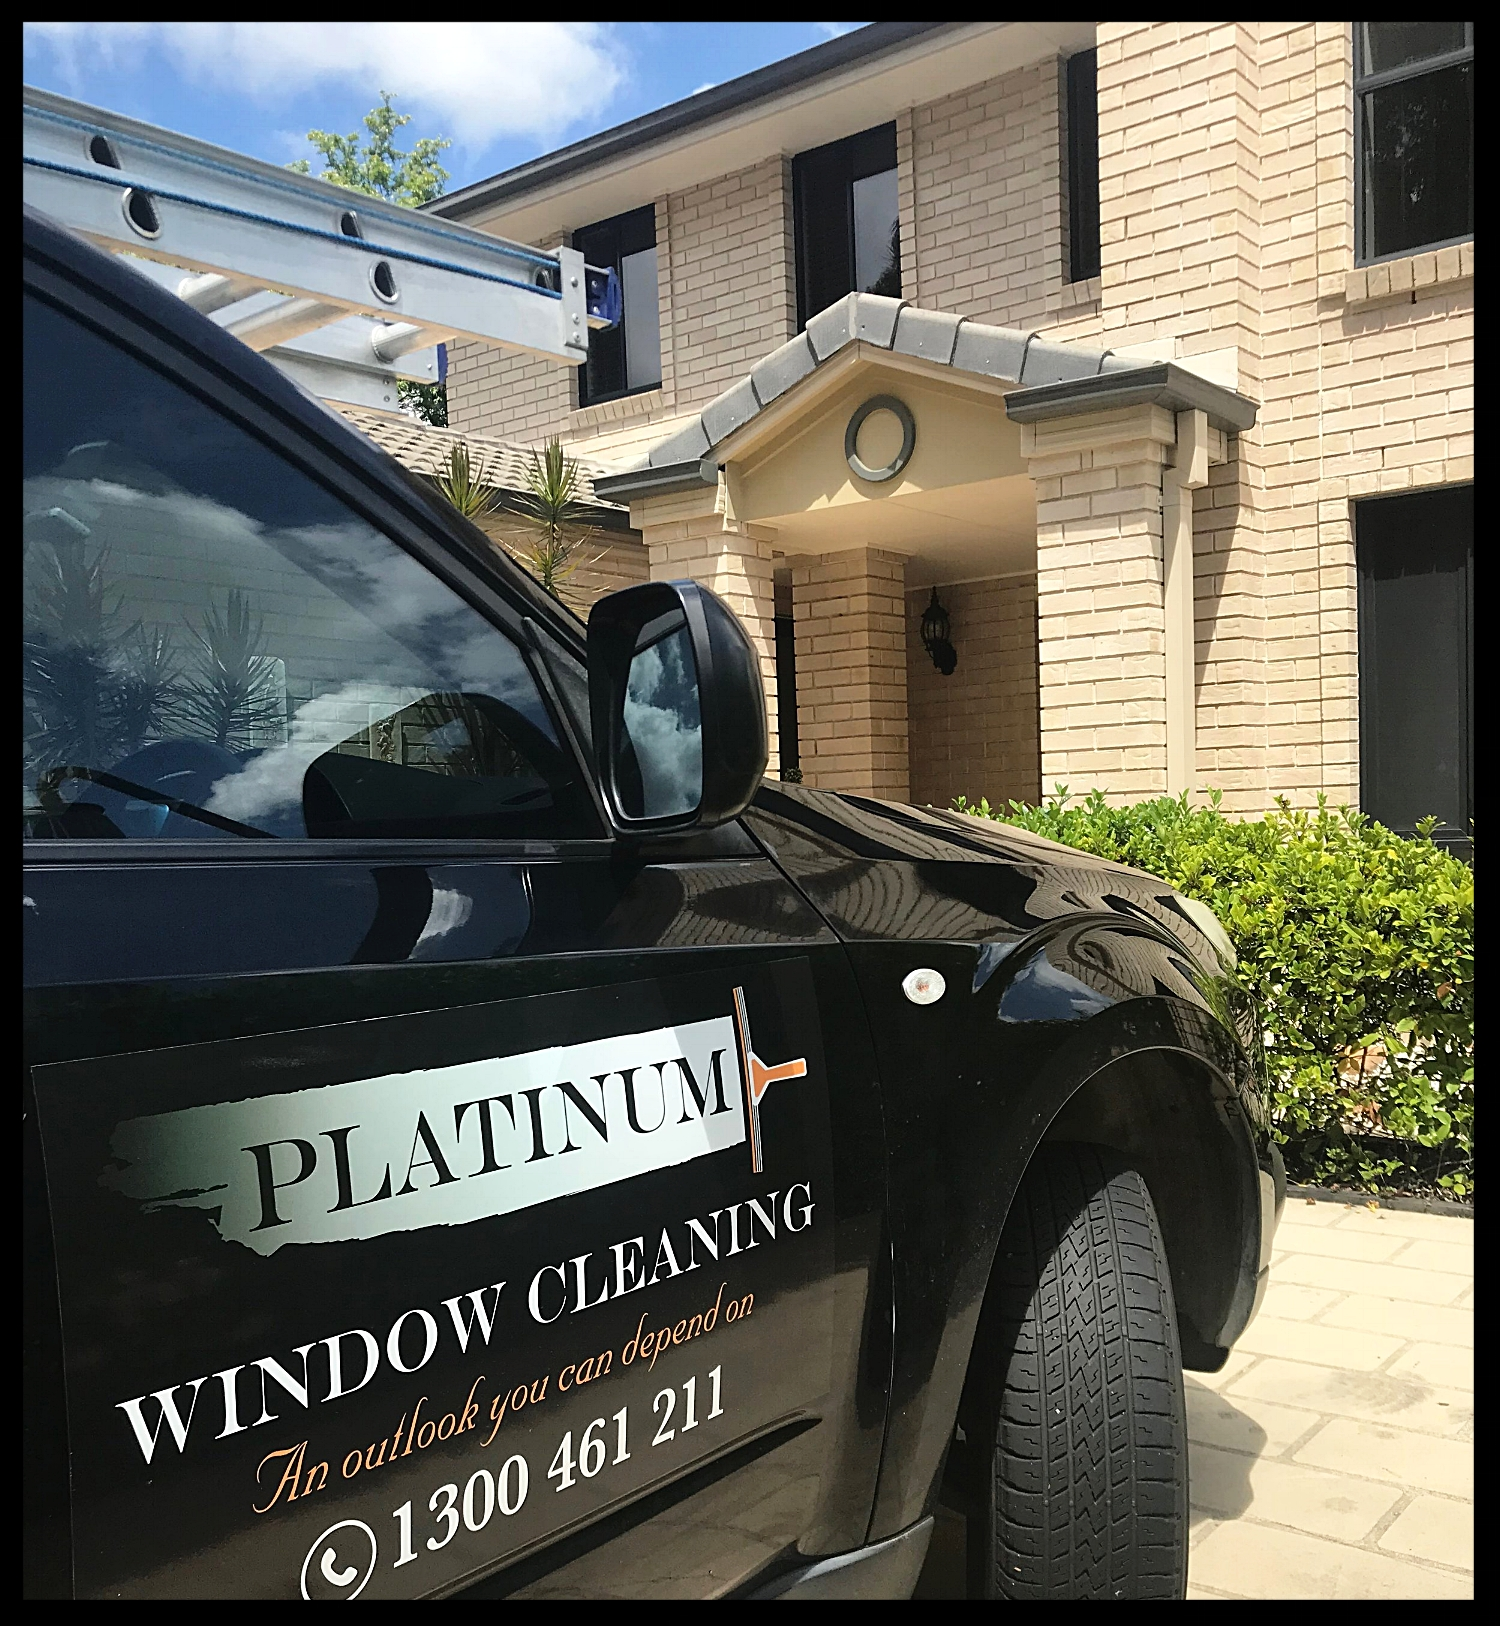 commercial_window_cleaning_service.jpg